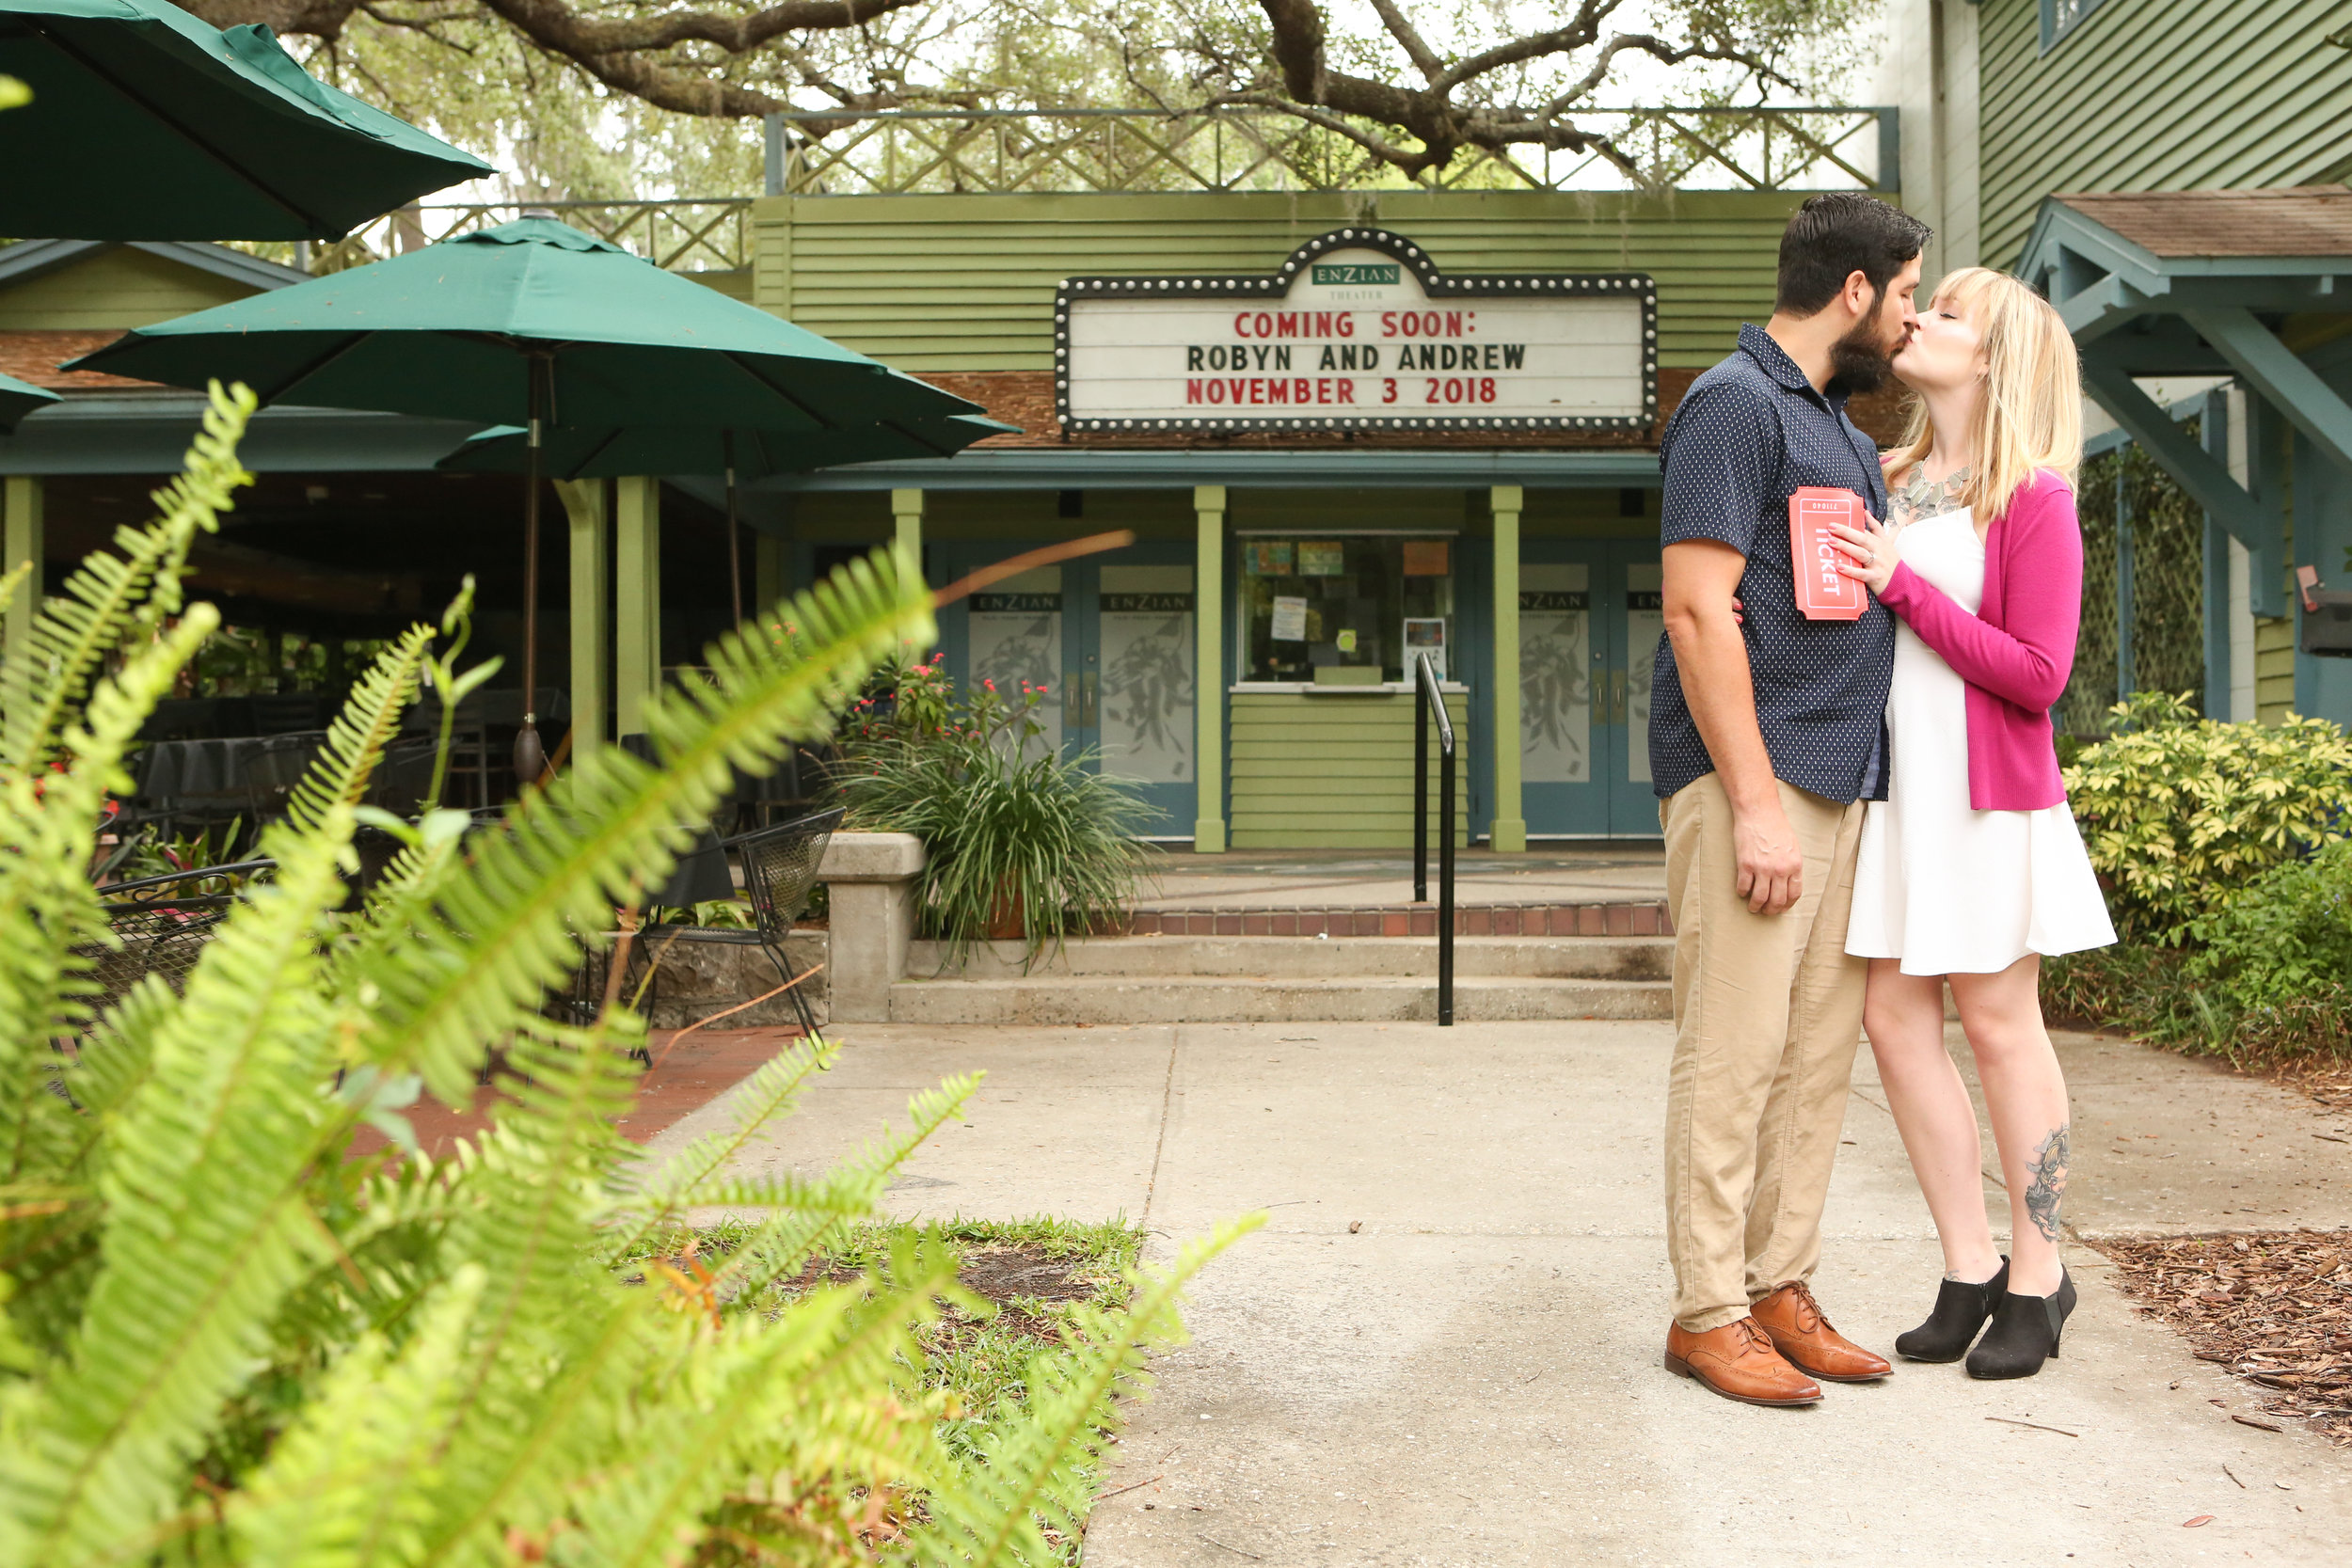 orlando-wedding-photographer-engagement-session-enzian-movie-theatre.jpg